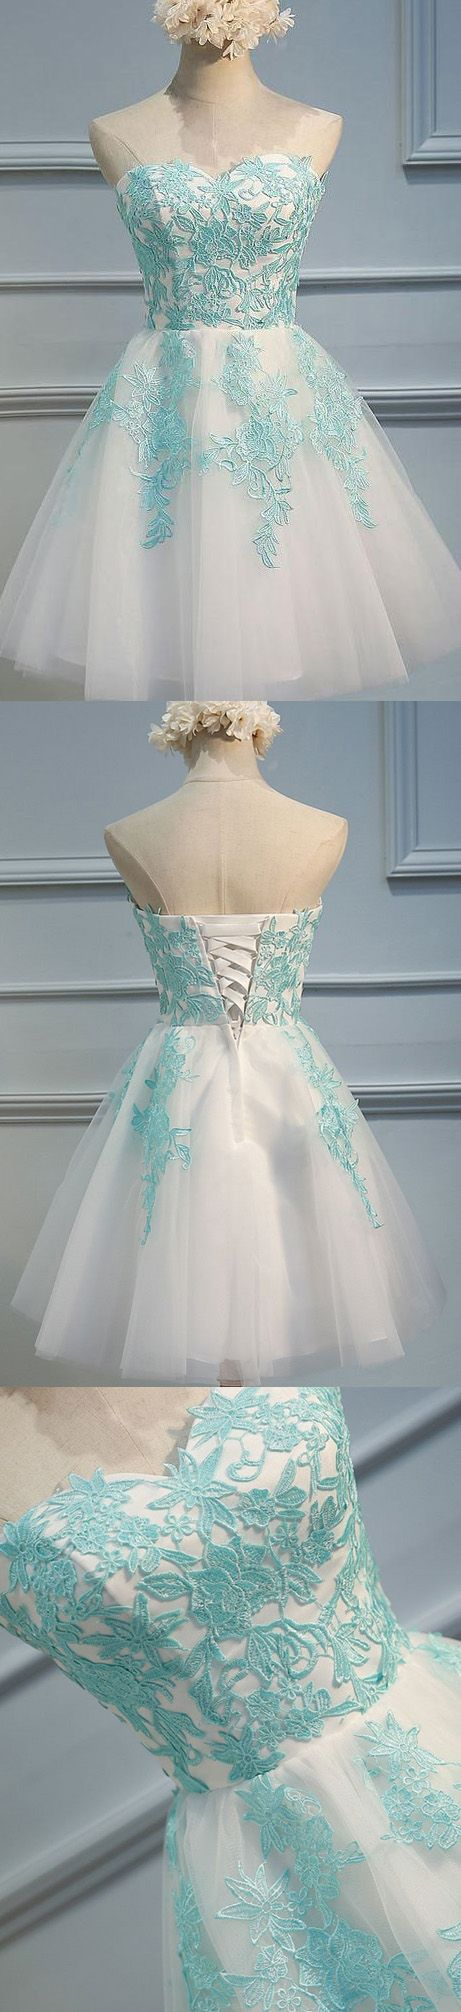 Customized Mini Prom Party Dress Short Ivory Dresses With Lace Up ...